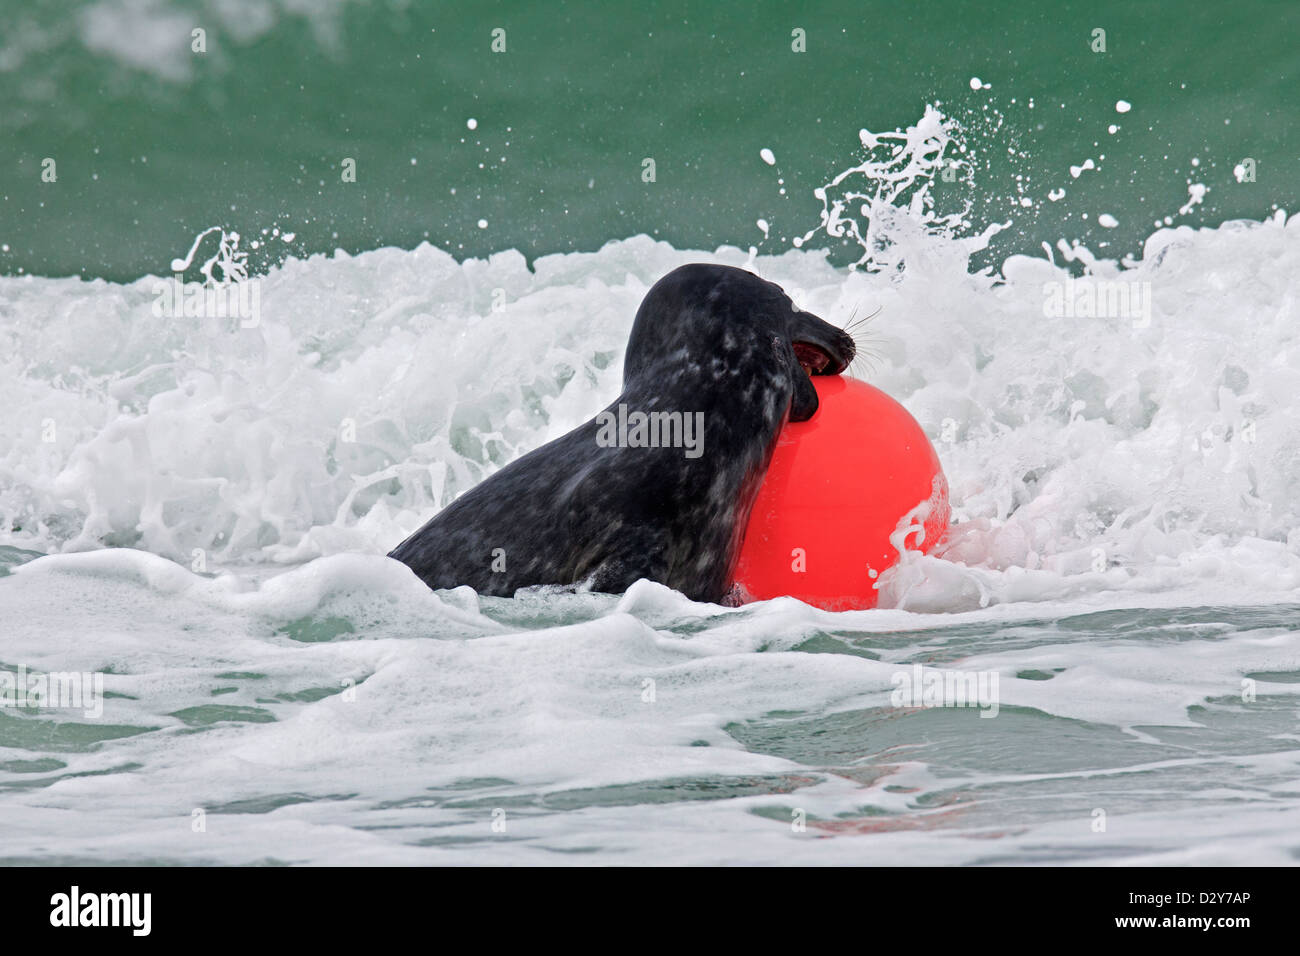 Grey seal / gray seal (Halichoerus grypus) playing and biting in buoy in surf waves along the North Sea coast - Stock Image